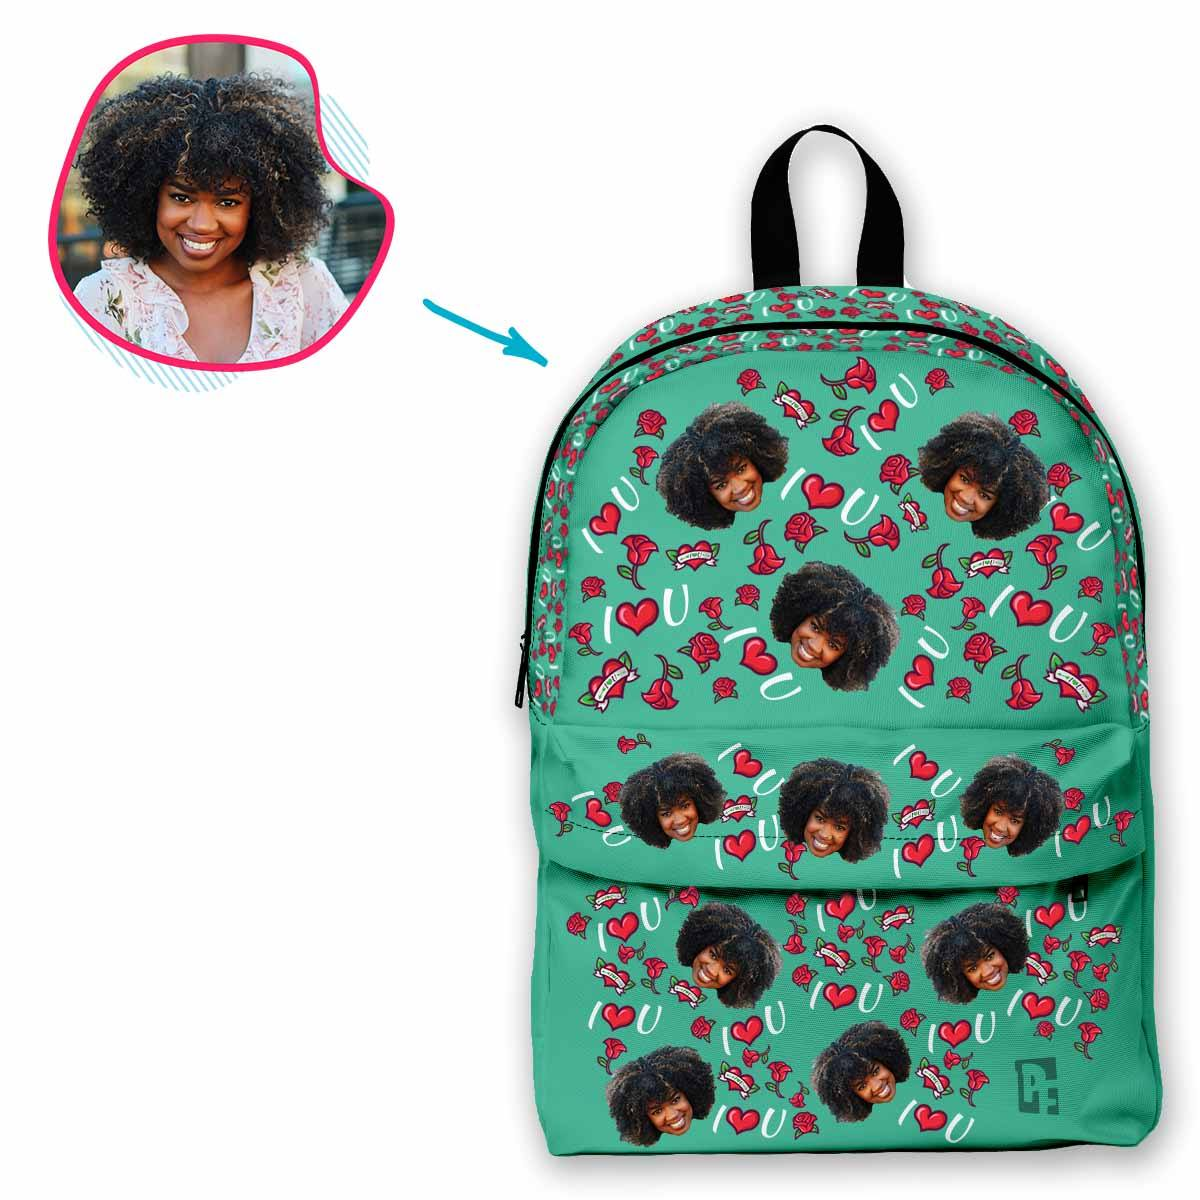 mint Valentines classic backpack personalized with photo of face printed on it